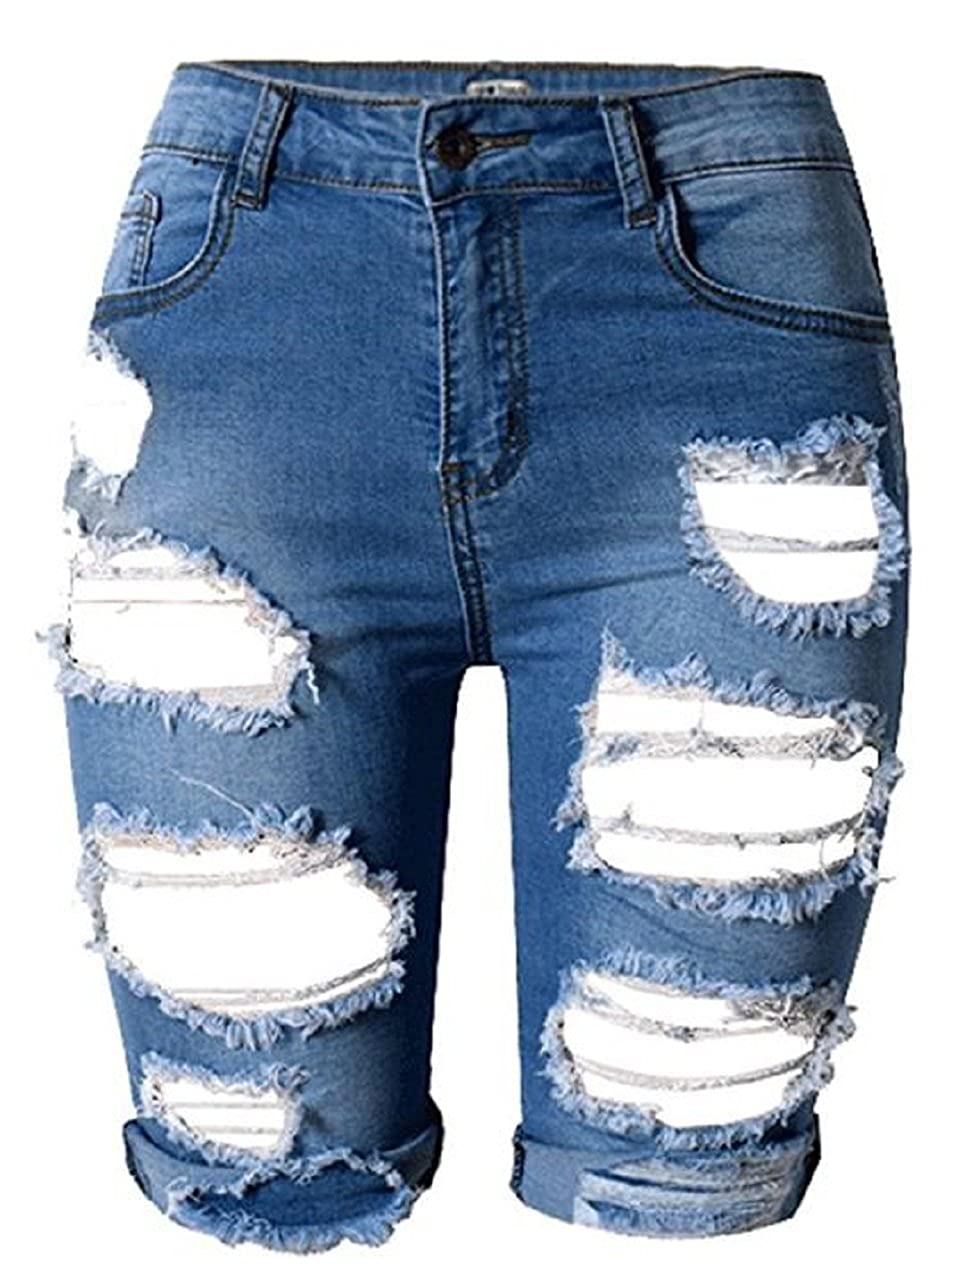 cee8cf4e54 MFWAREHOUSE Womens High Waist Knee Length Ripped Distressed Denim Shorts  Summer Casual Denim Ripped Destroyed Bermuda Shorts Jeans Pants (Navy, ...